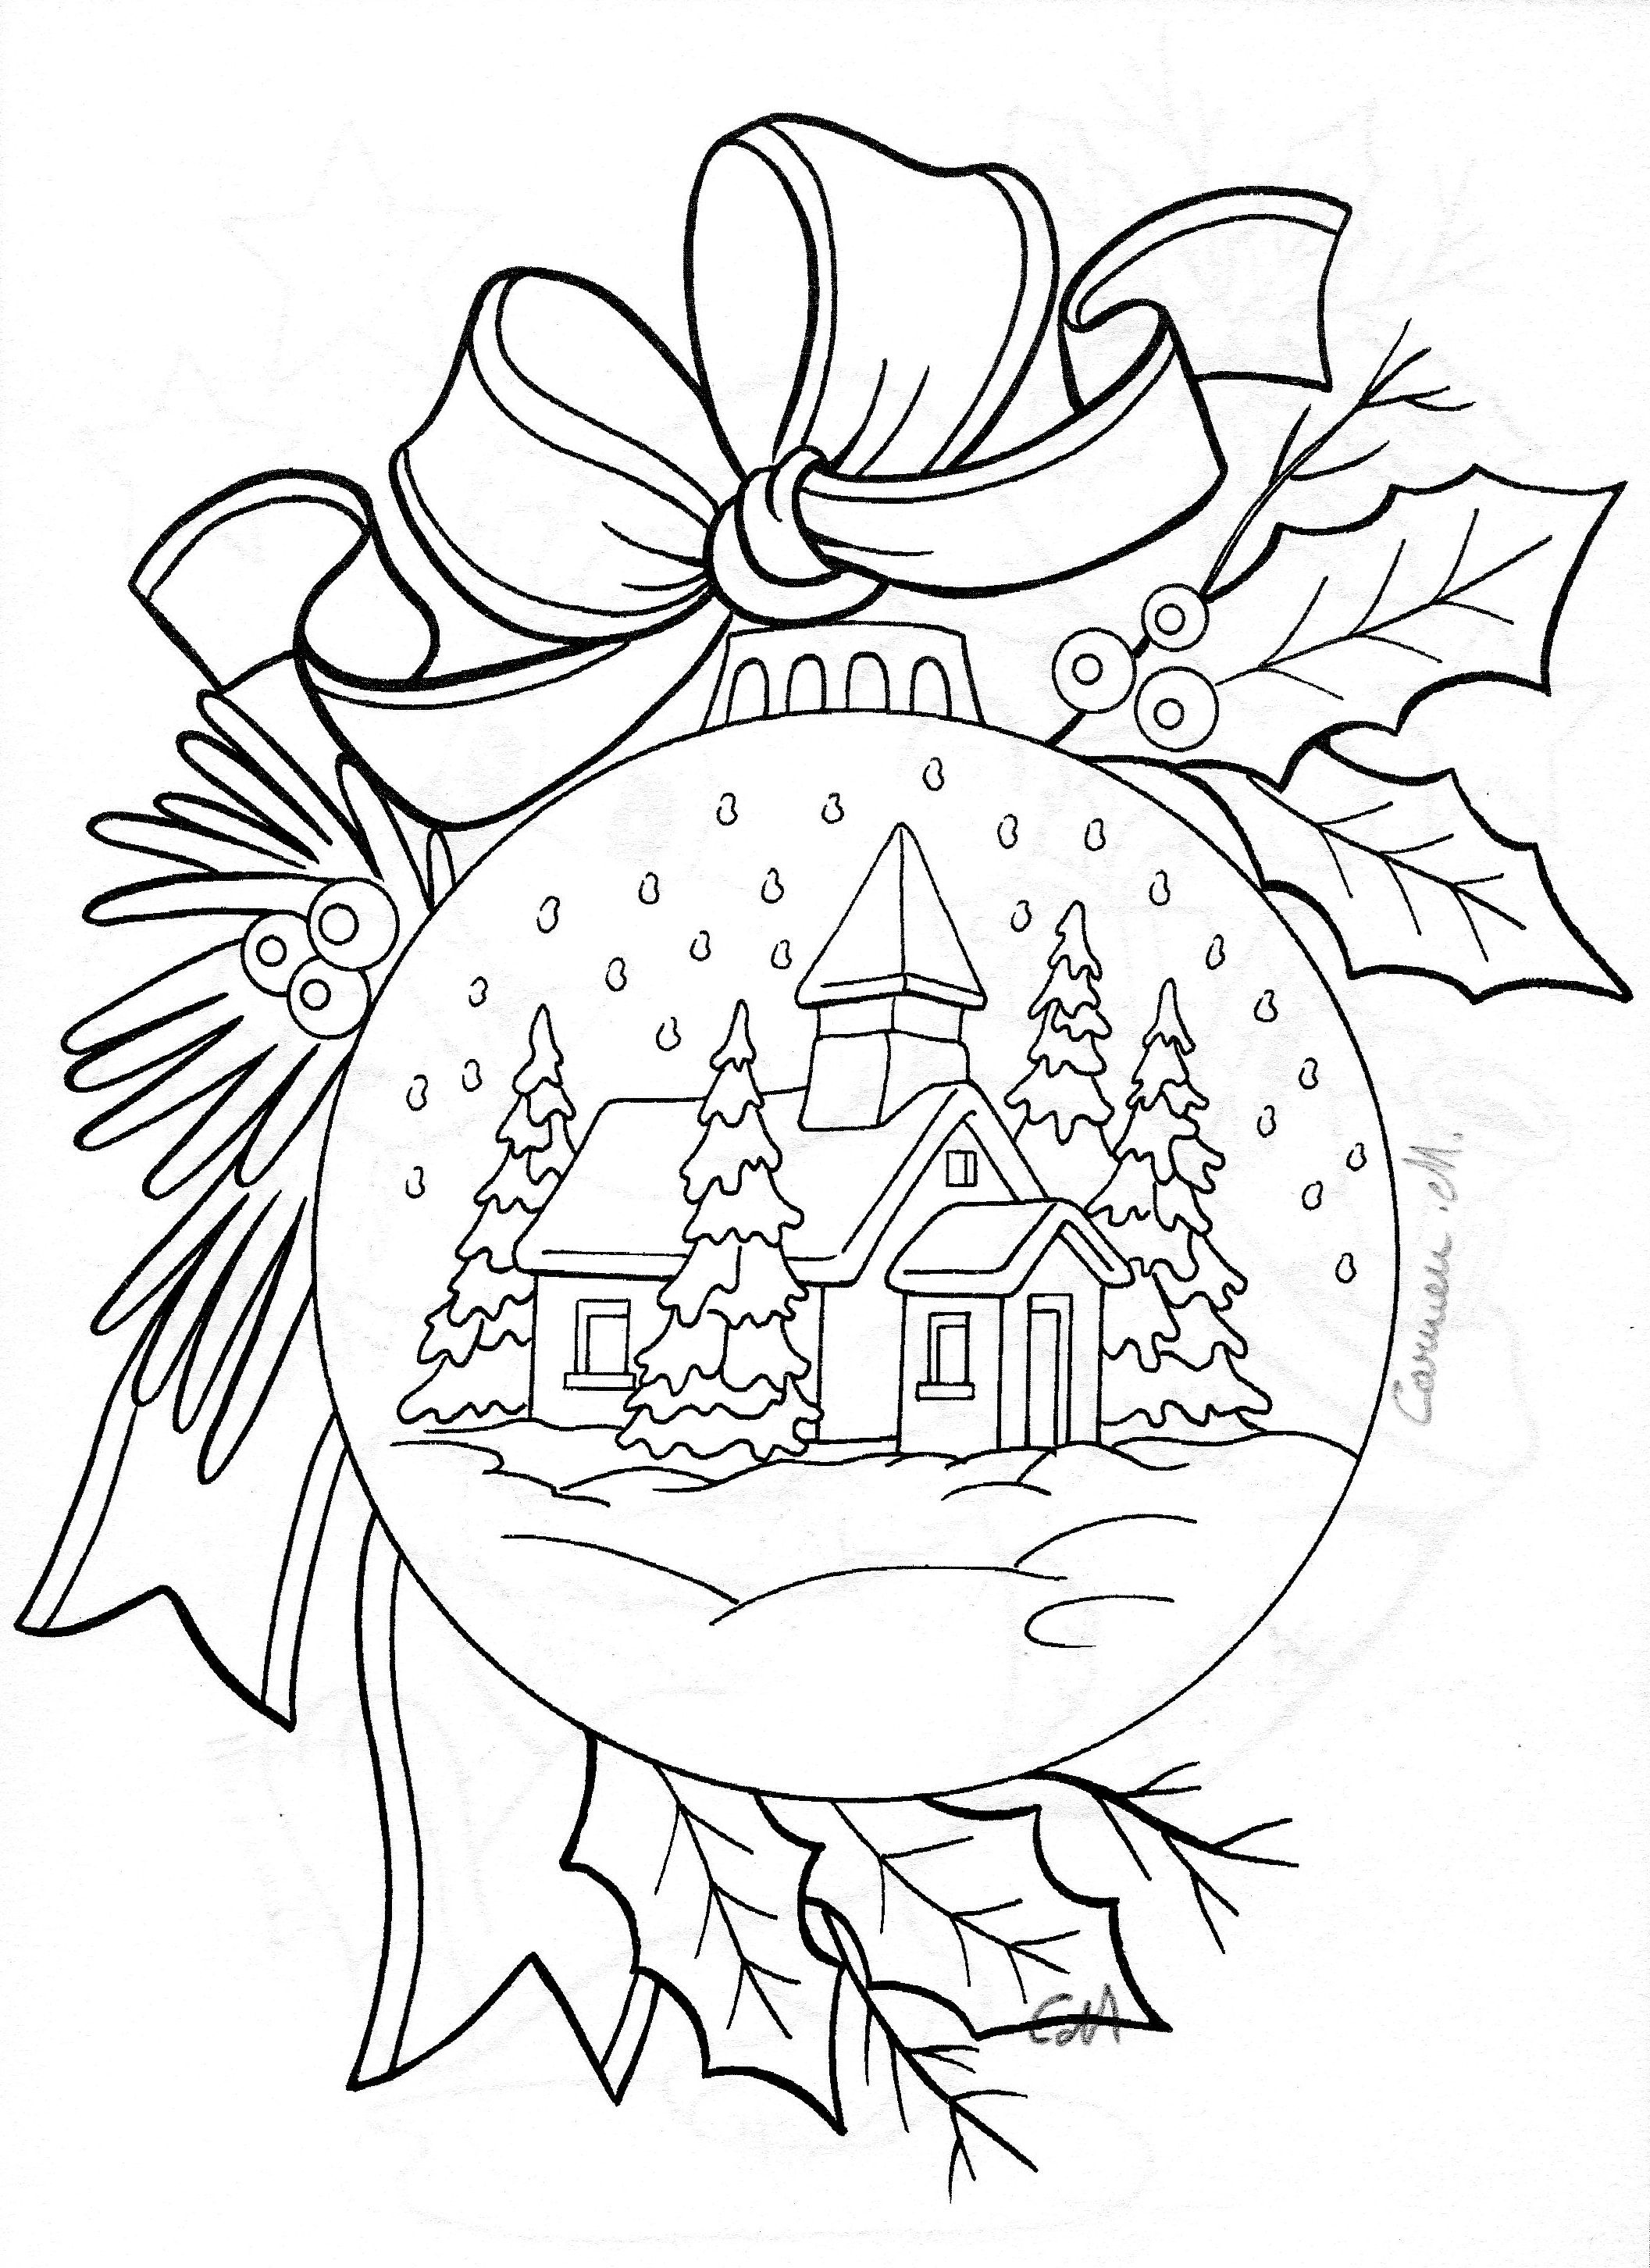 Pin by Linda Frank on Adult and Children s Coloring Pages